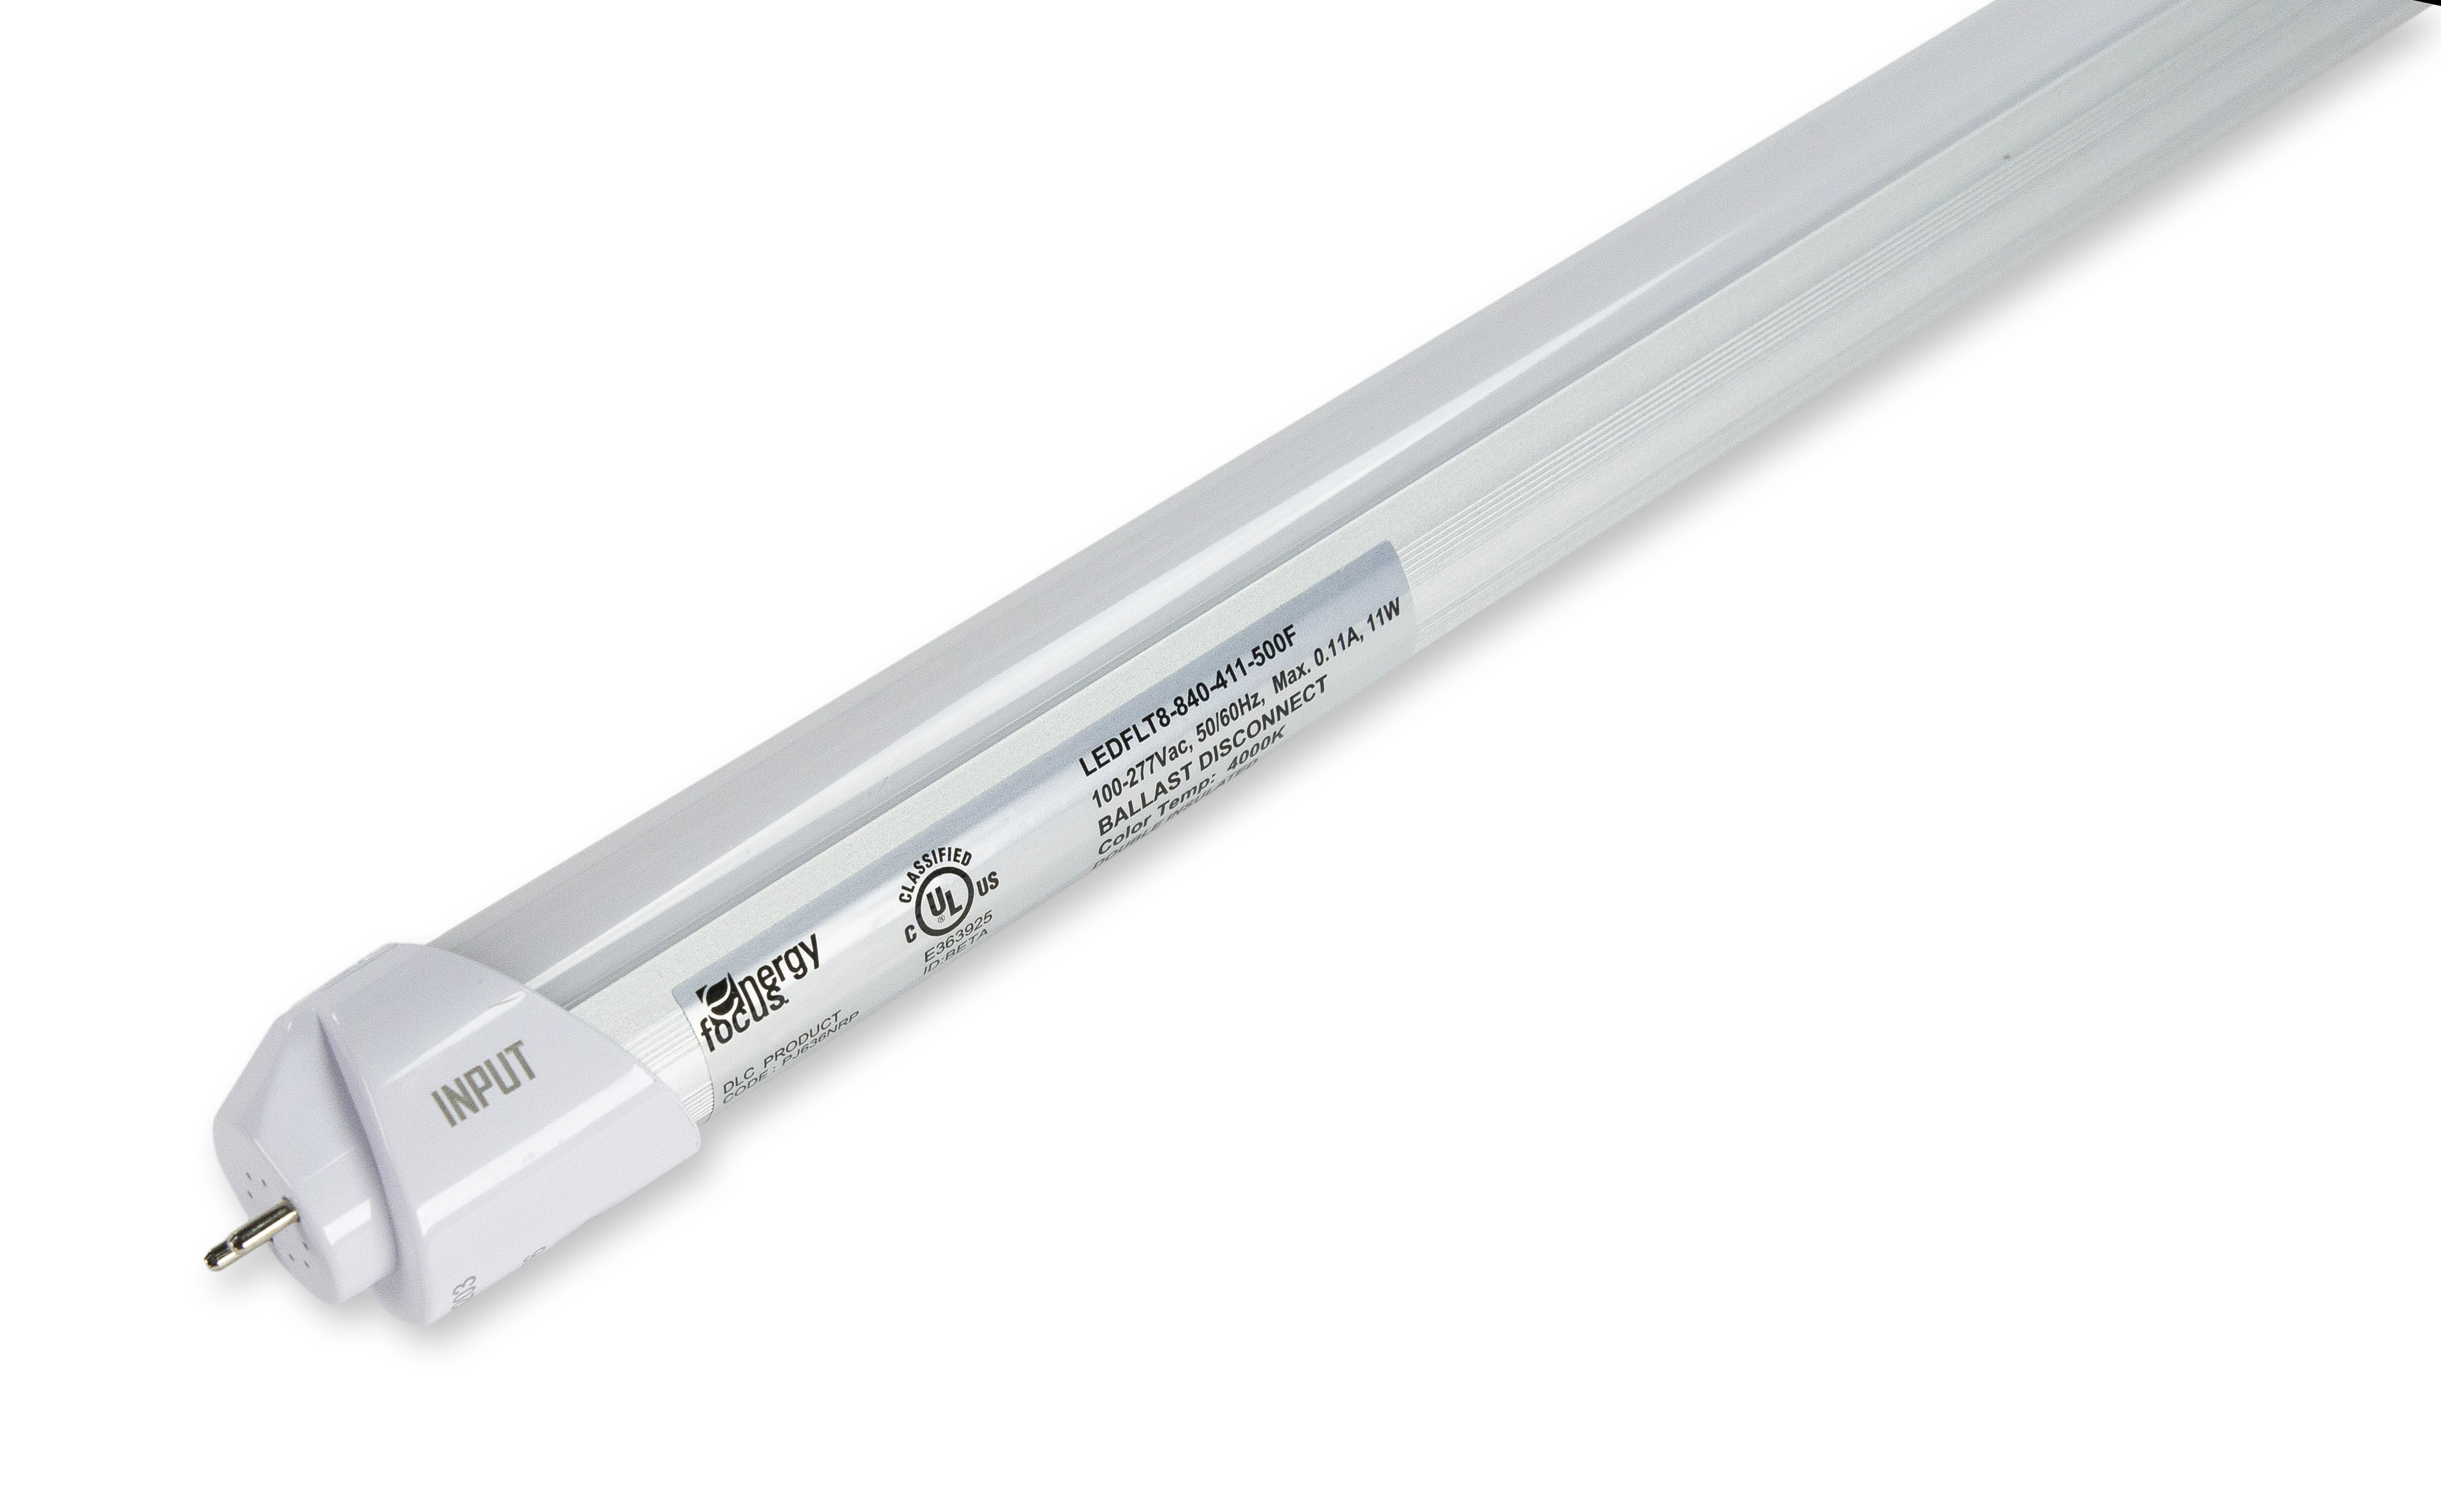 Energy Focus 500D Series LED Tube Side view